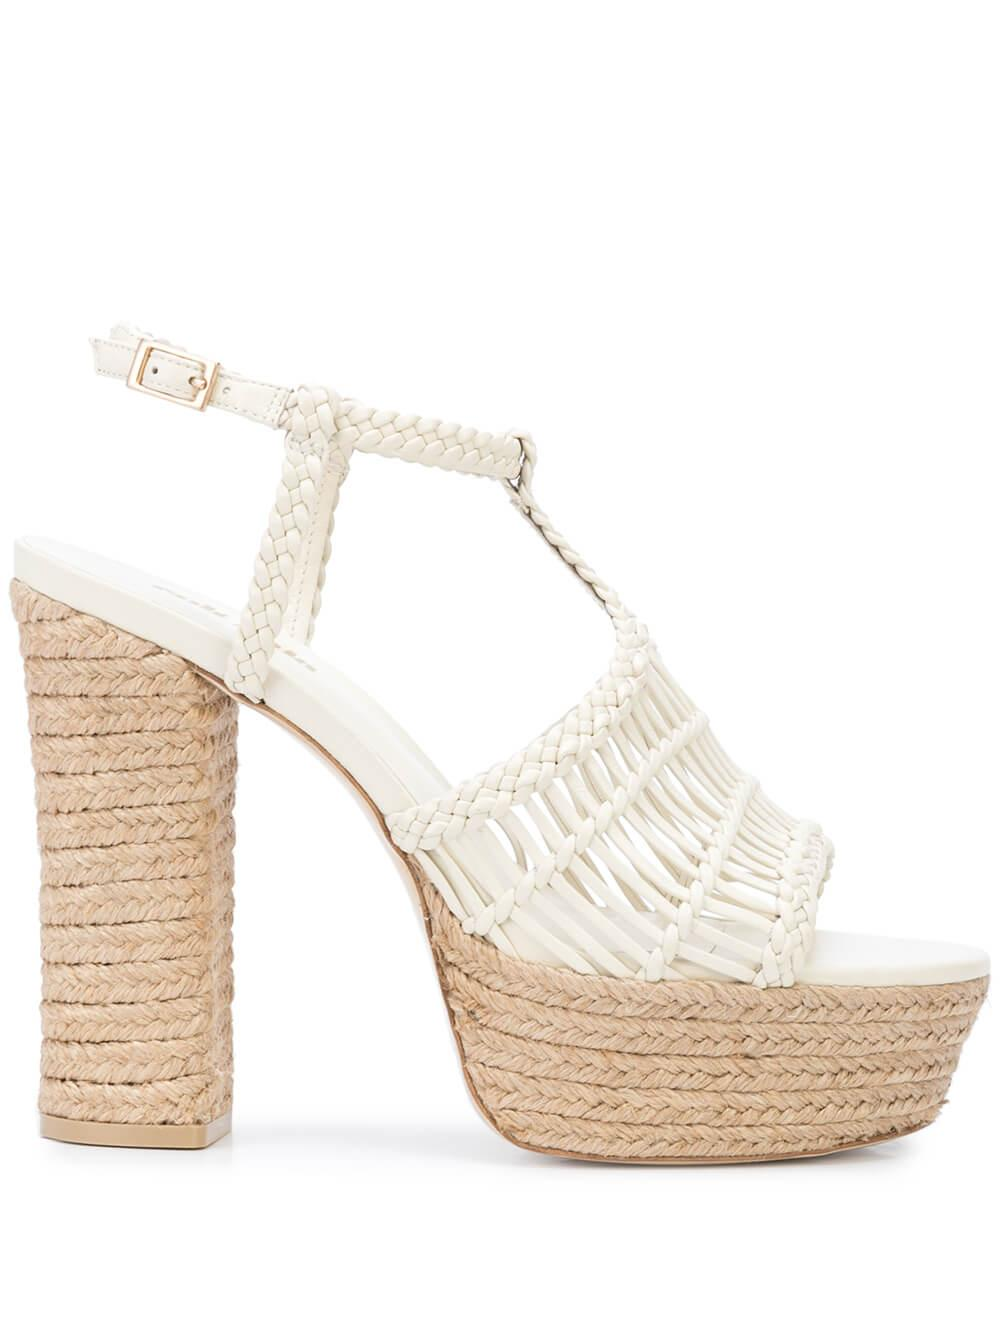 Thea Platform Woven Sandal With Ankle Strap